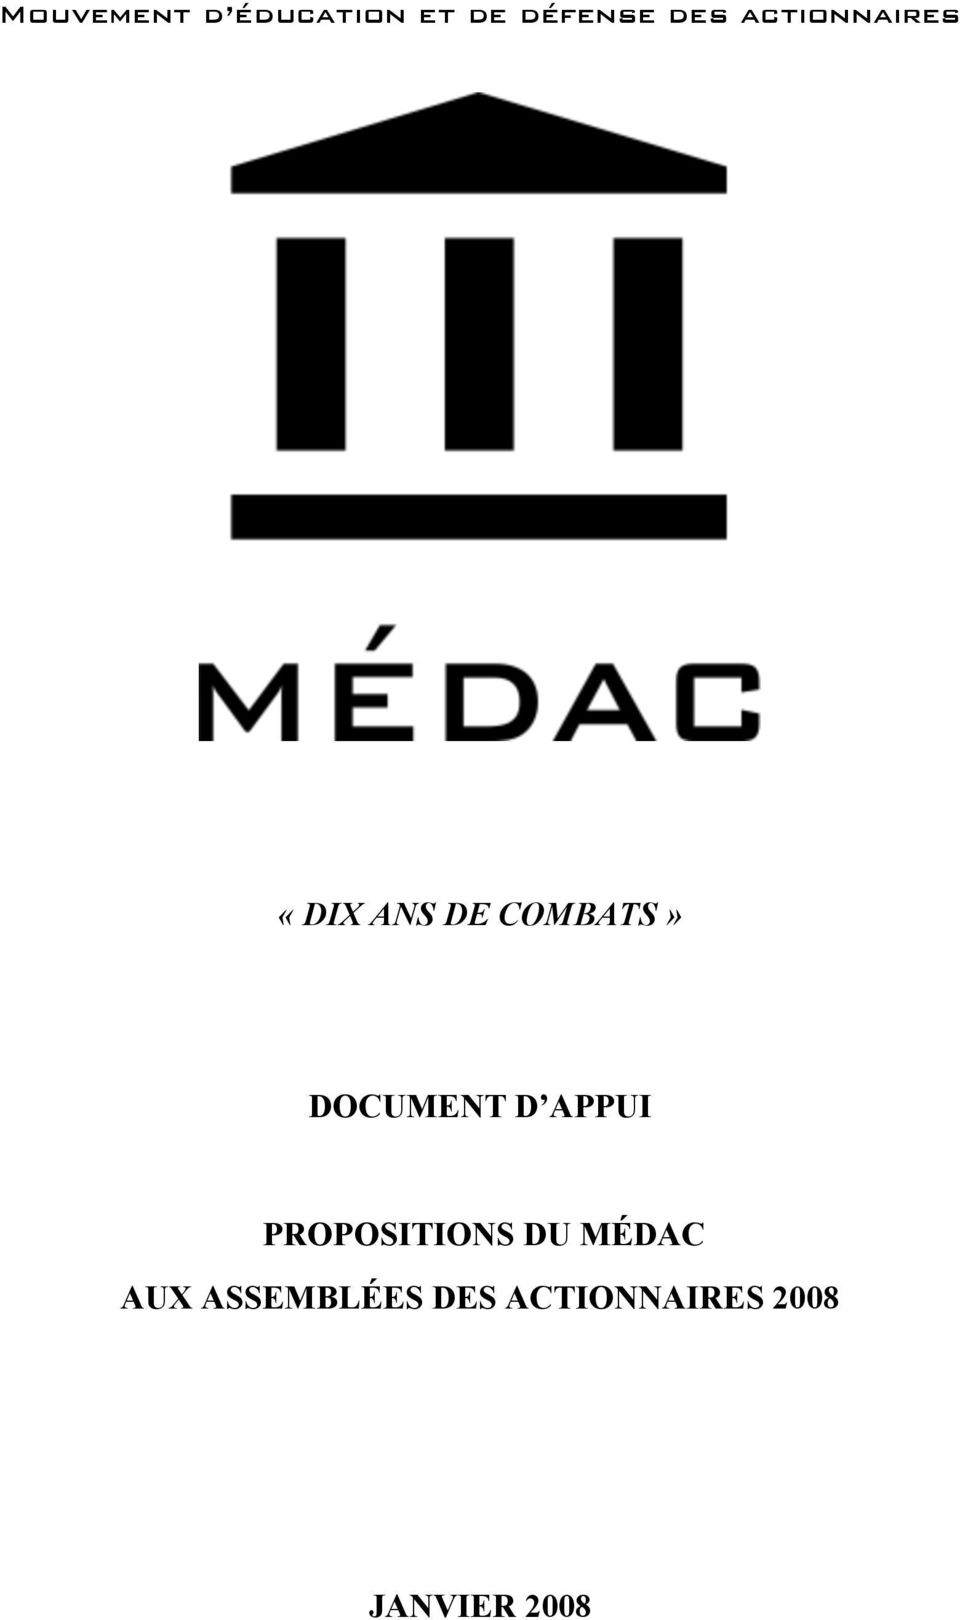 DOCUMENT D APPUI PROPOSITIONS DU MÉDAC